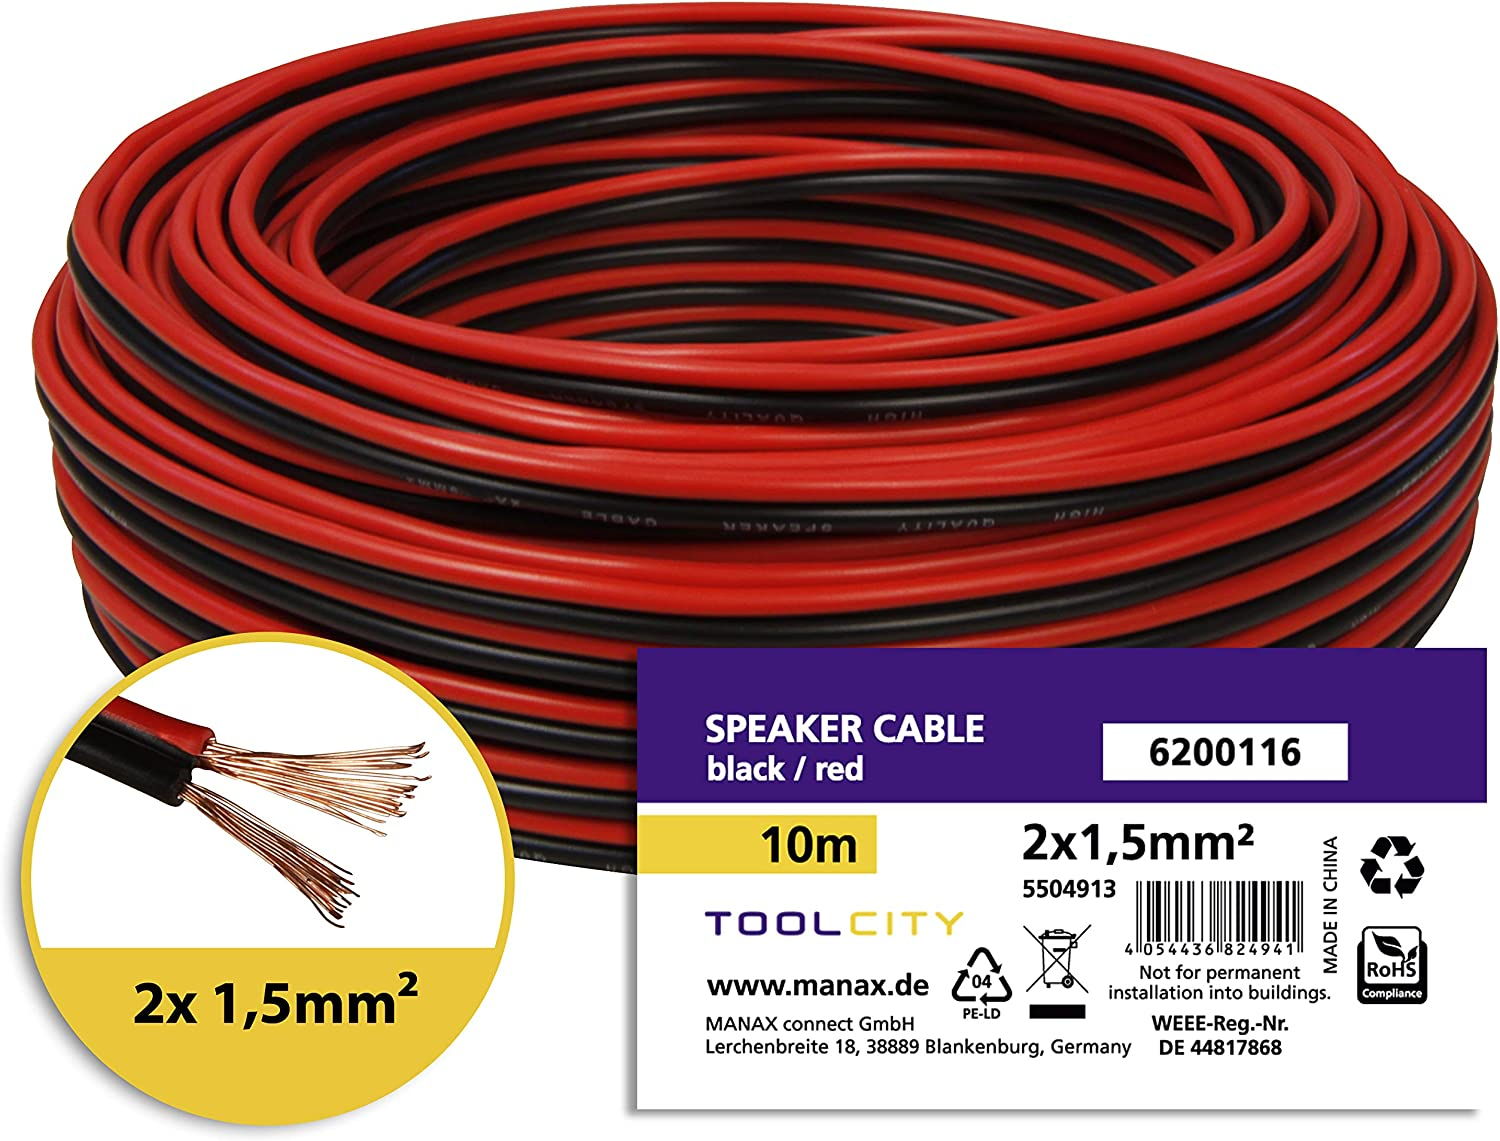 /25/M Transparent 2x1,50/mm/² Box Cable//Audio Cable/ Toolcity Speaker Cable Twin Wire